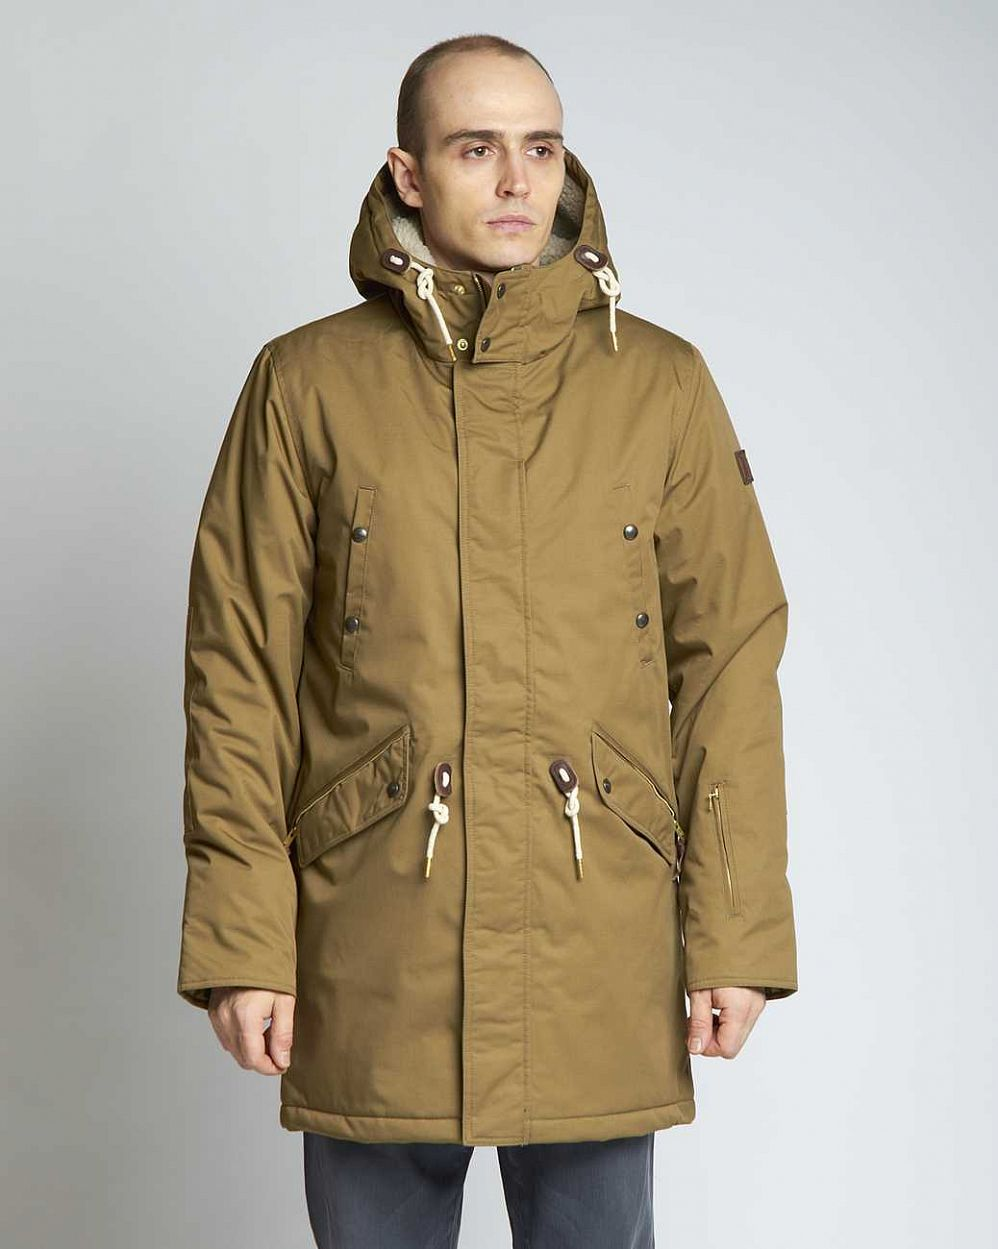 Куртка-Парка Loading Jacket Dark Beige отзывы